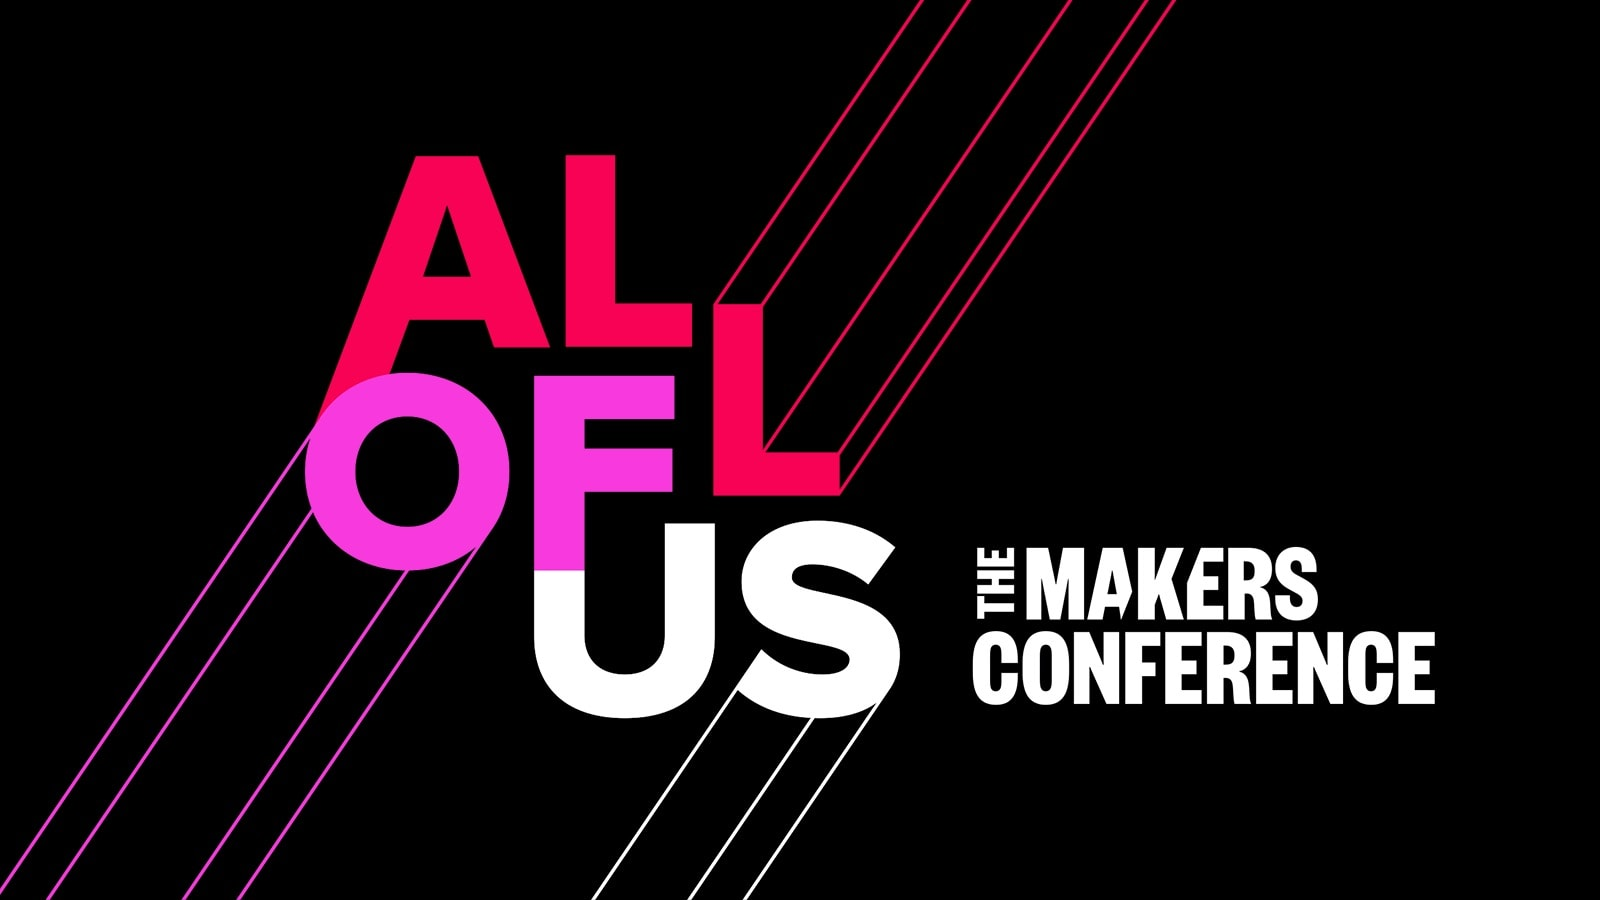 The 2019 MAKERS Conference: Follow Along Live!